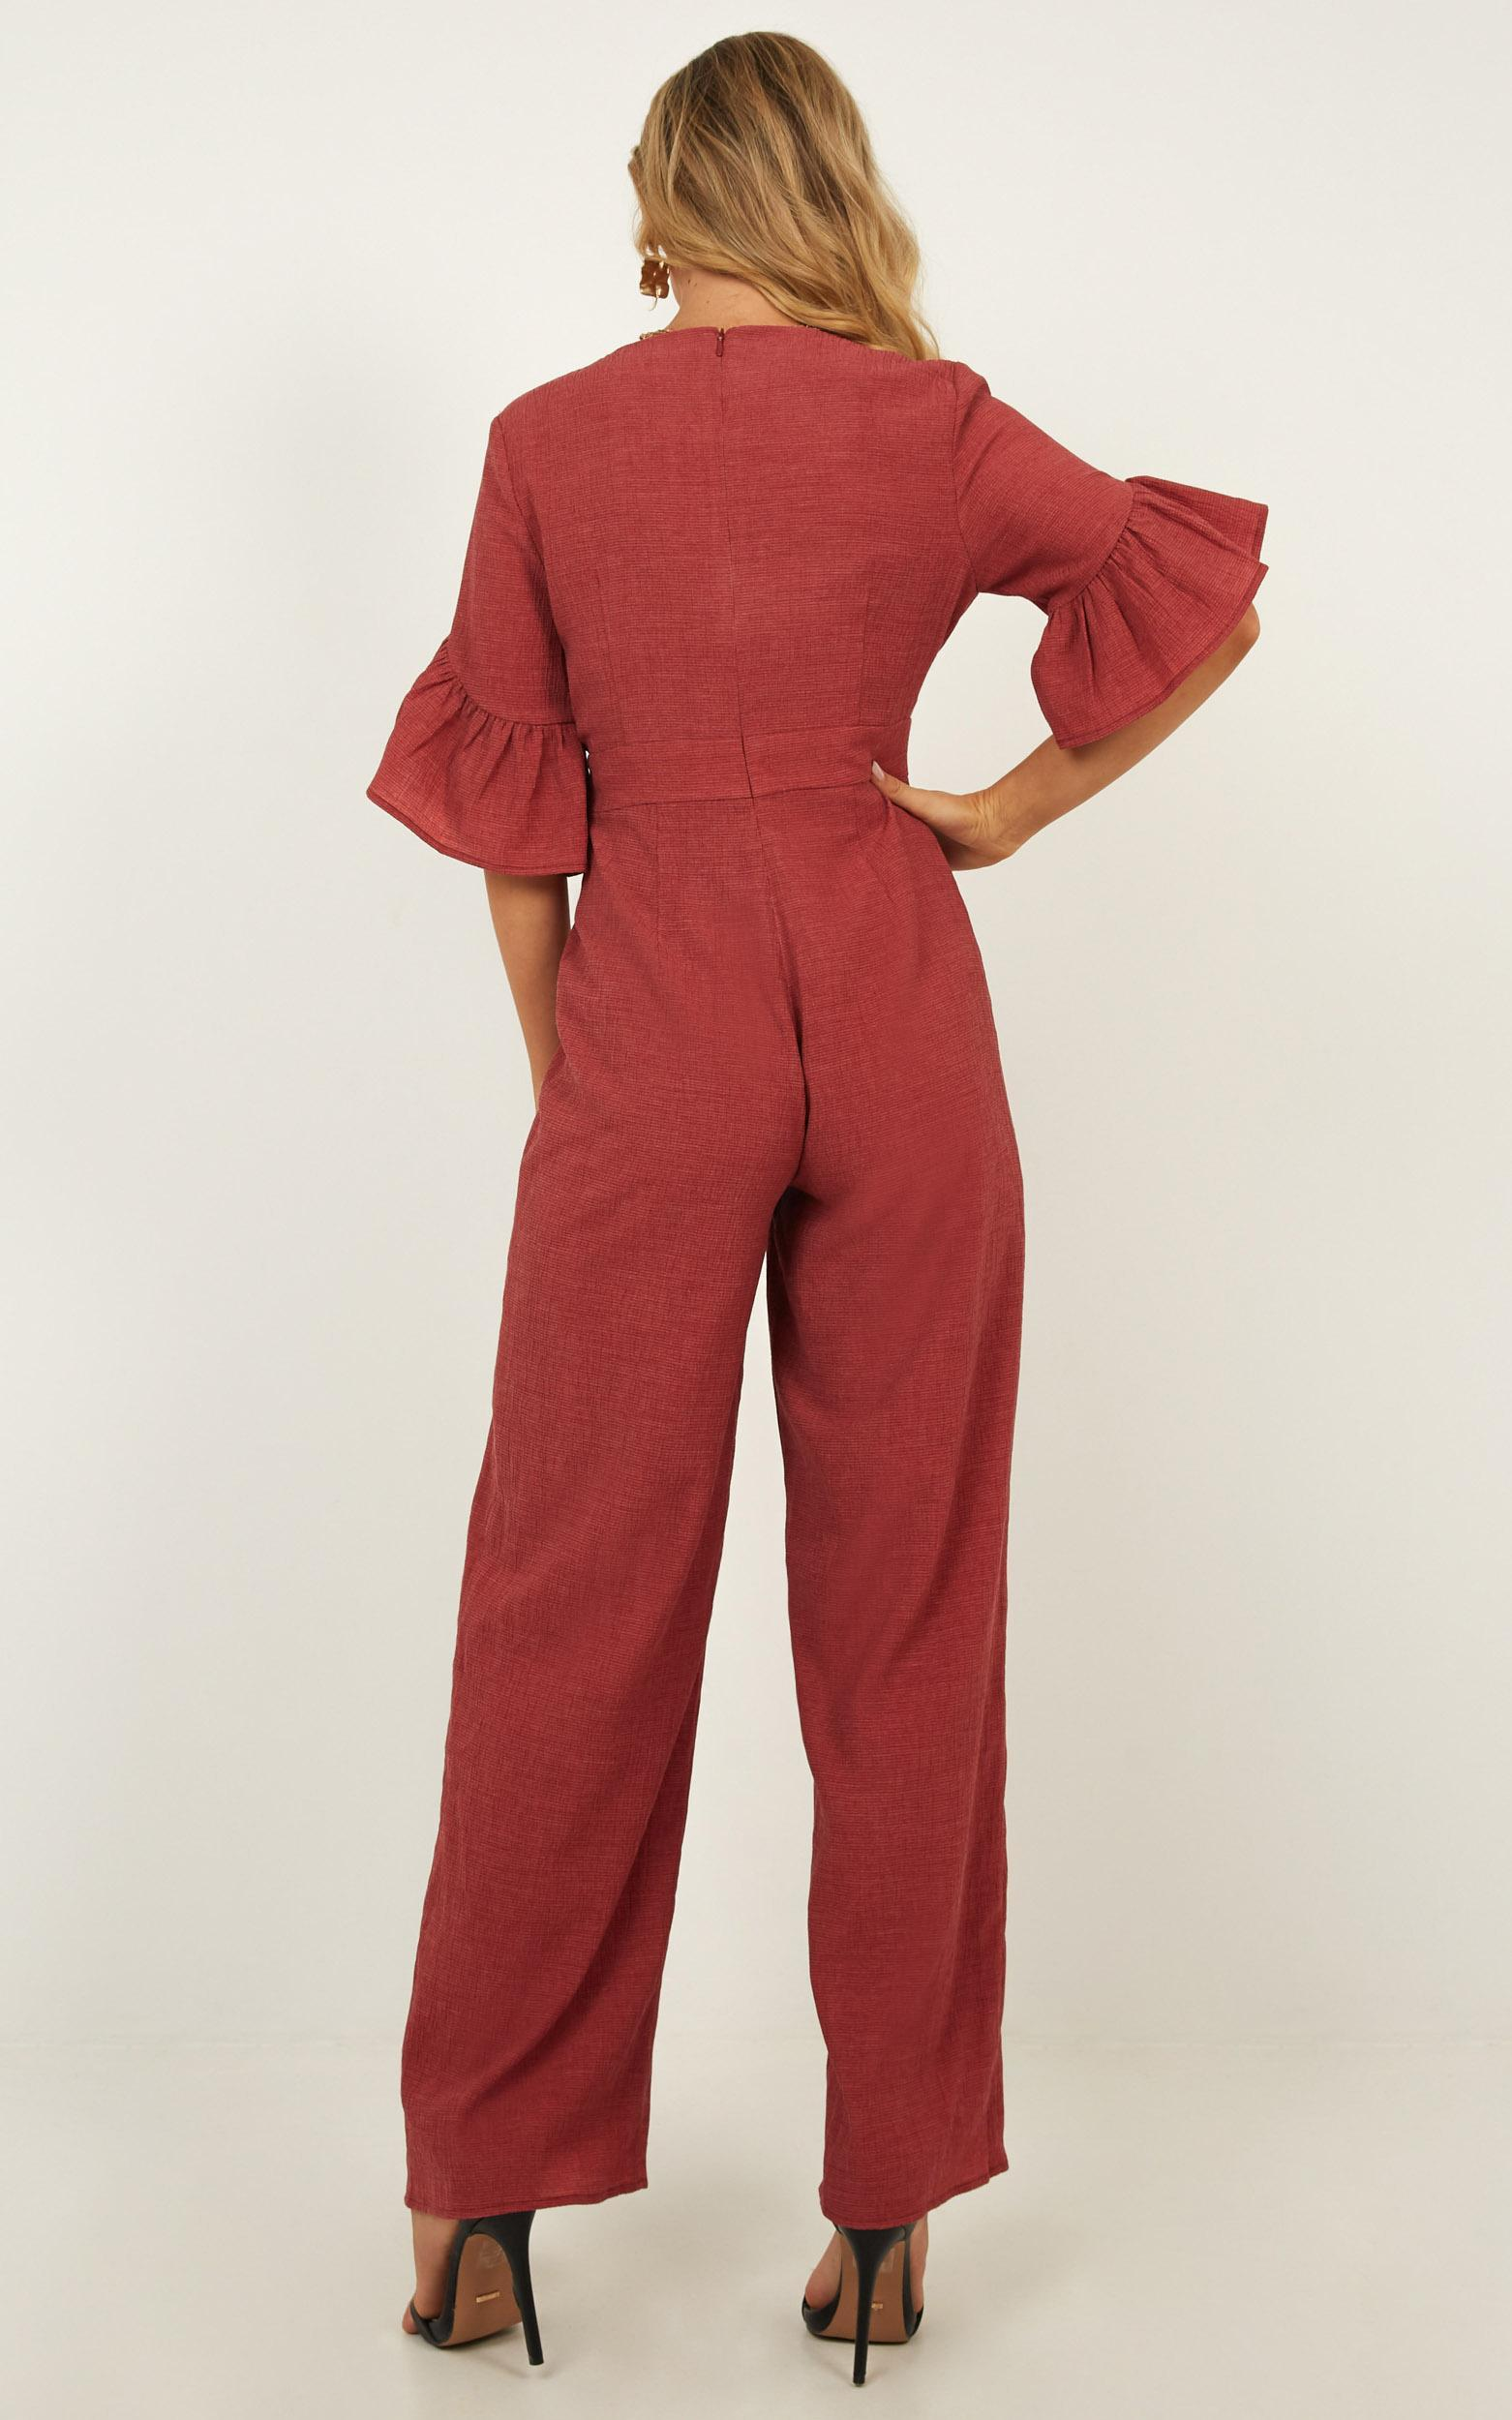 Lala Land Jumpsuit in paprika linen look - 18 (XXXL), Red, hi-res image number null